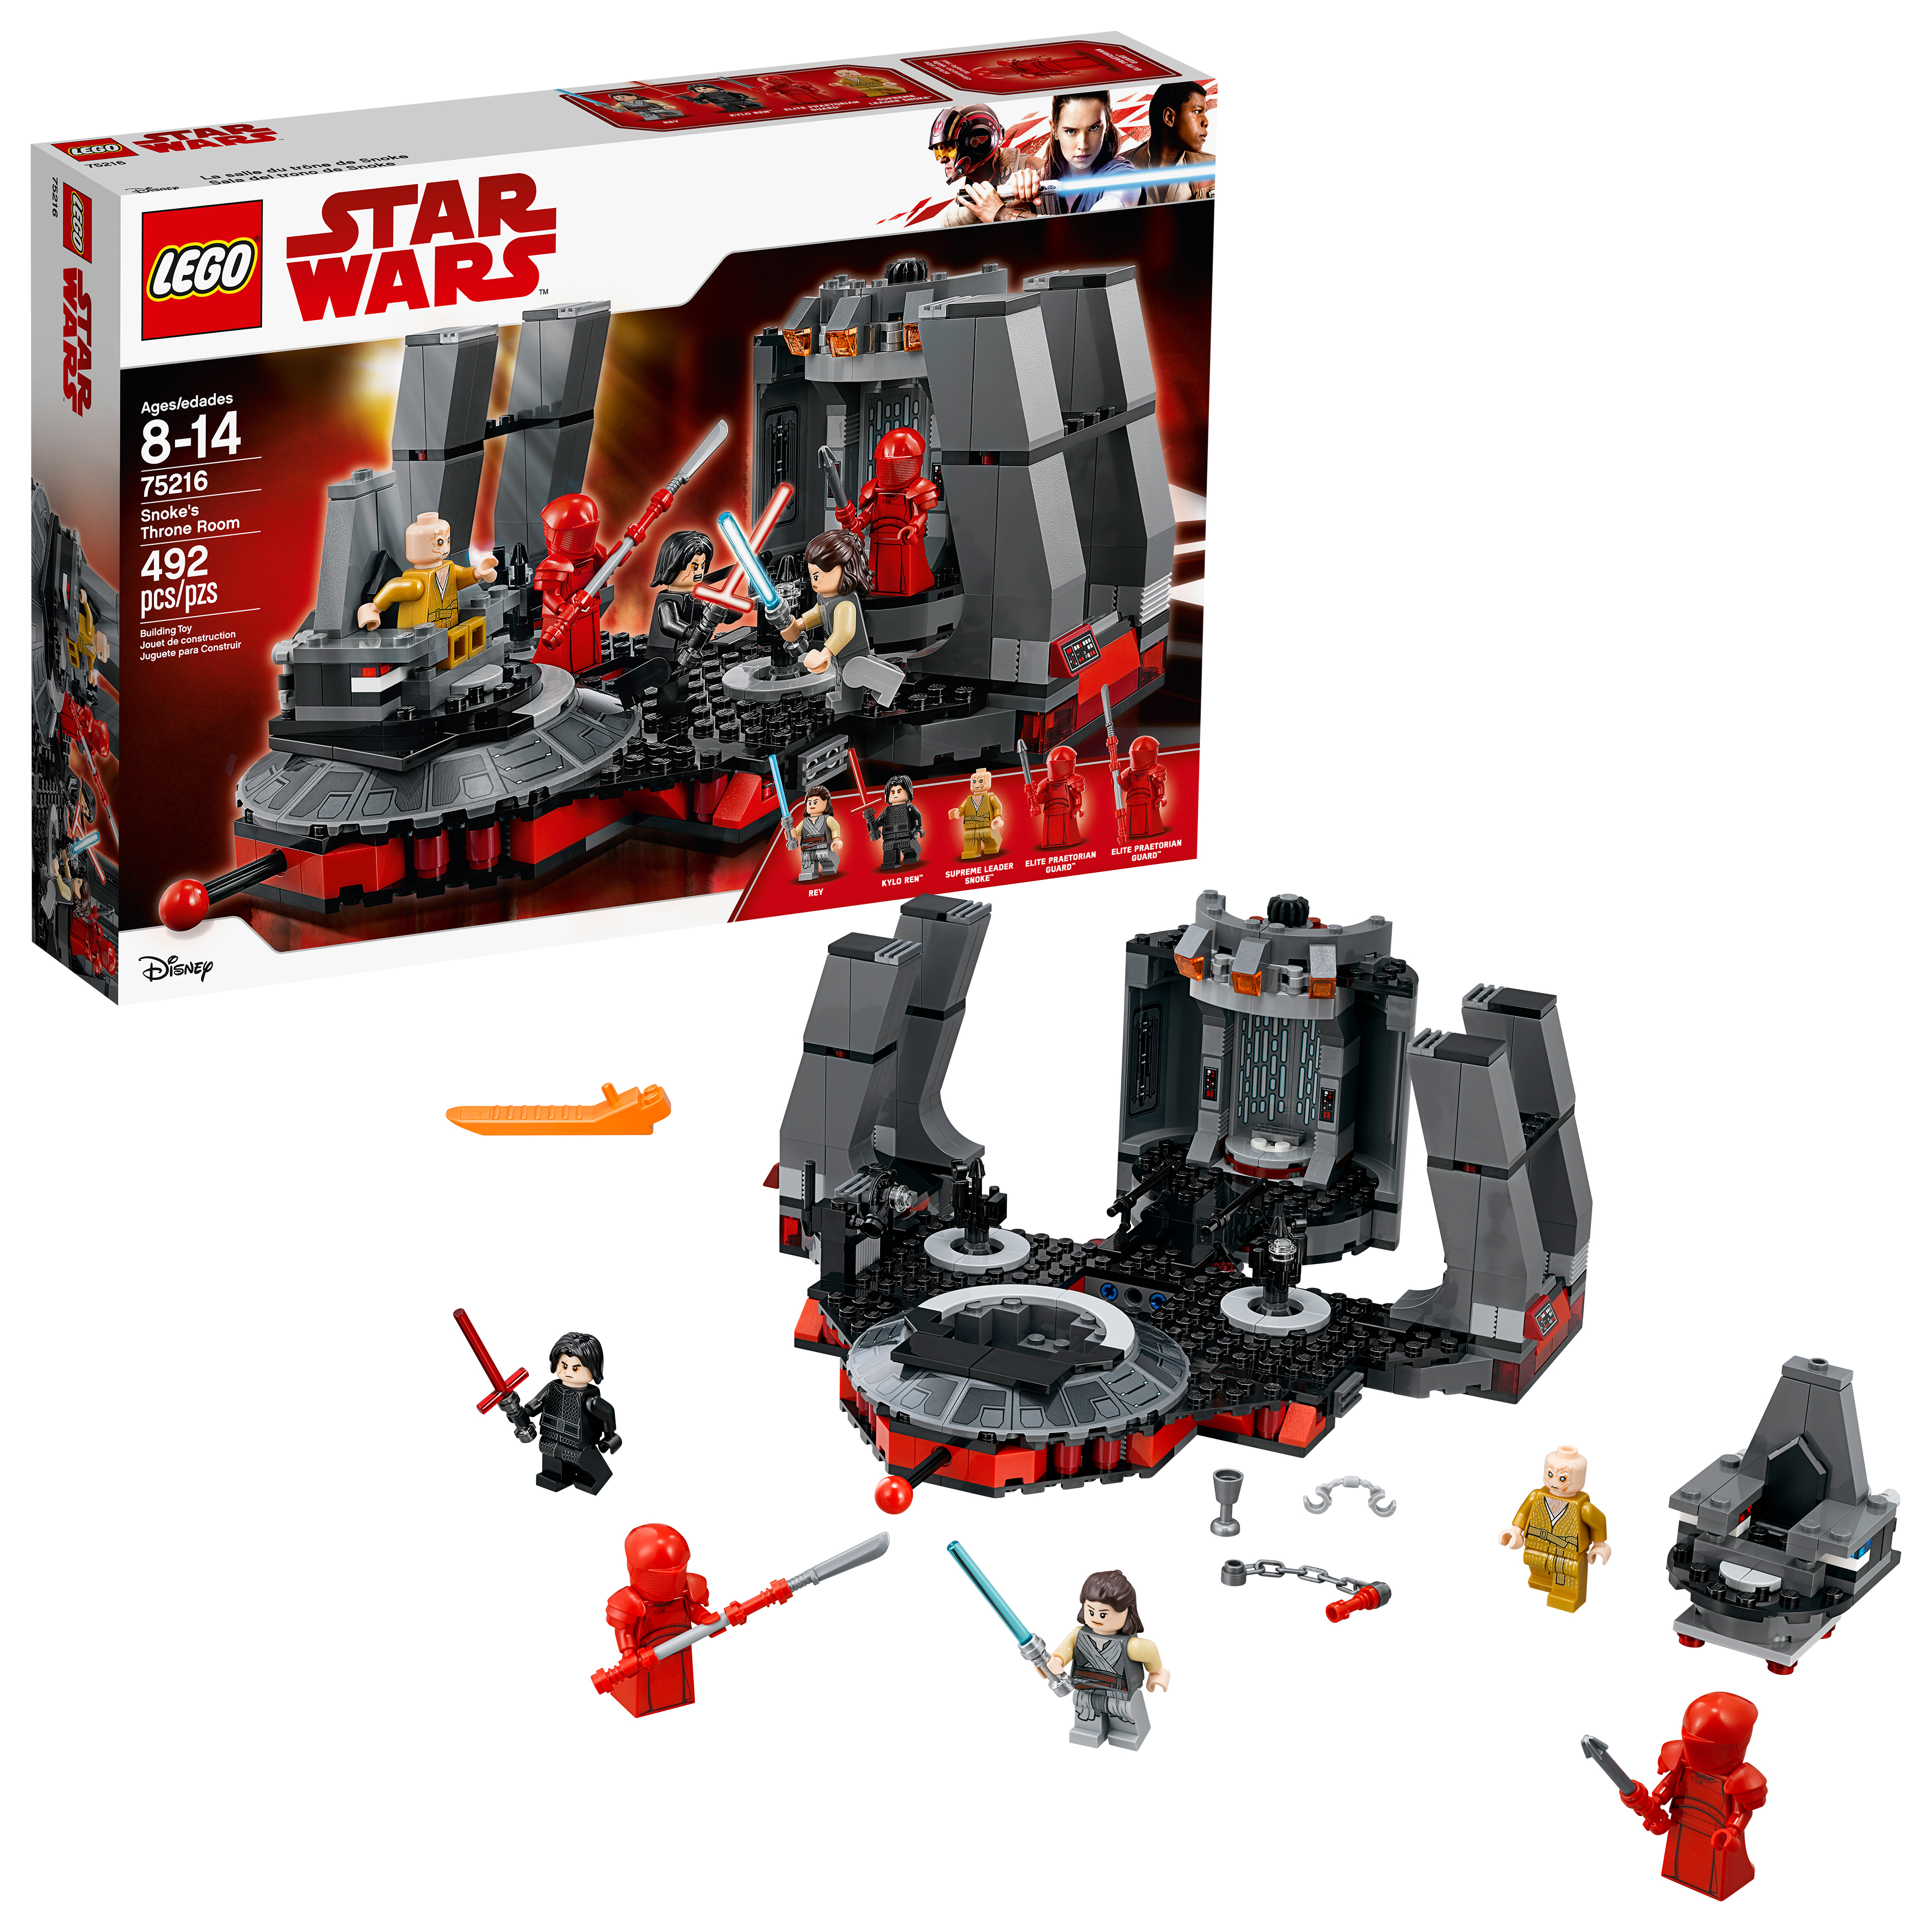 LEGO Star Wars Snoke's Throne Room 75216